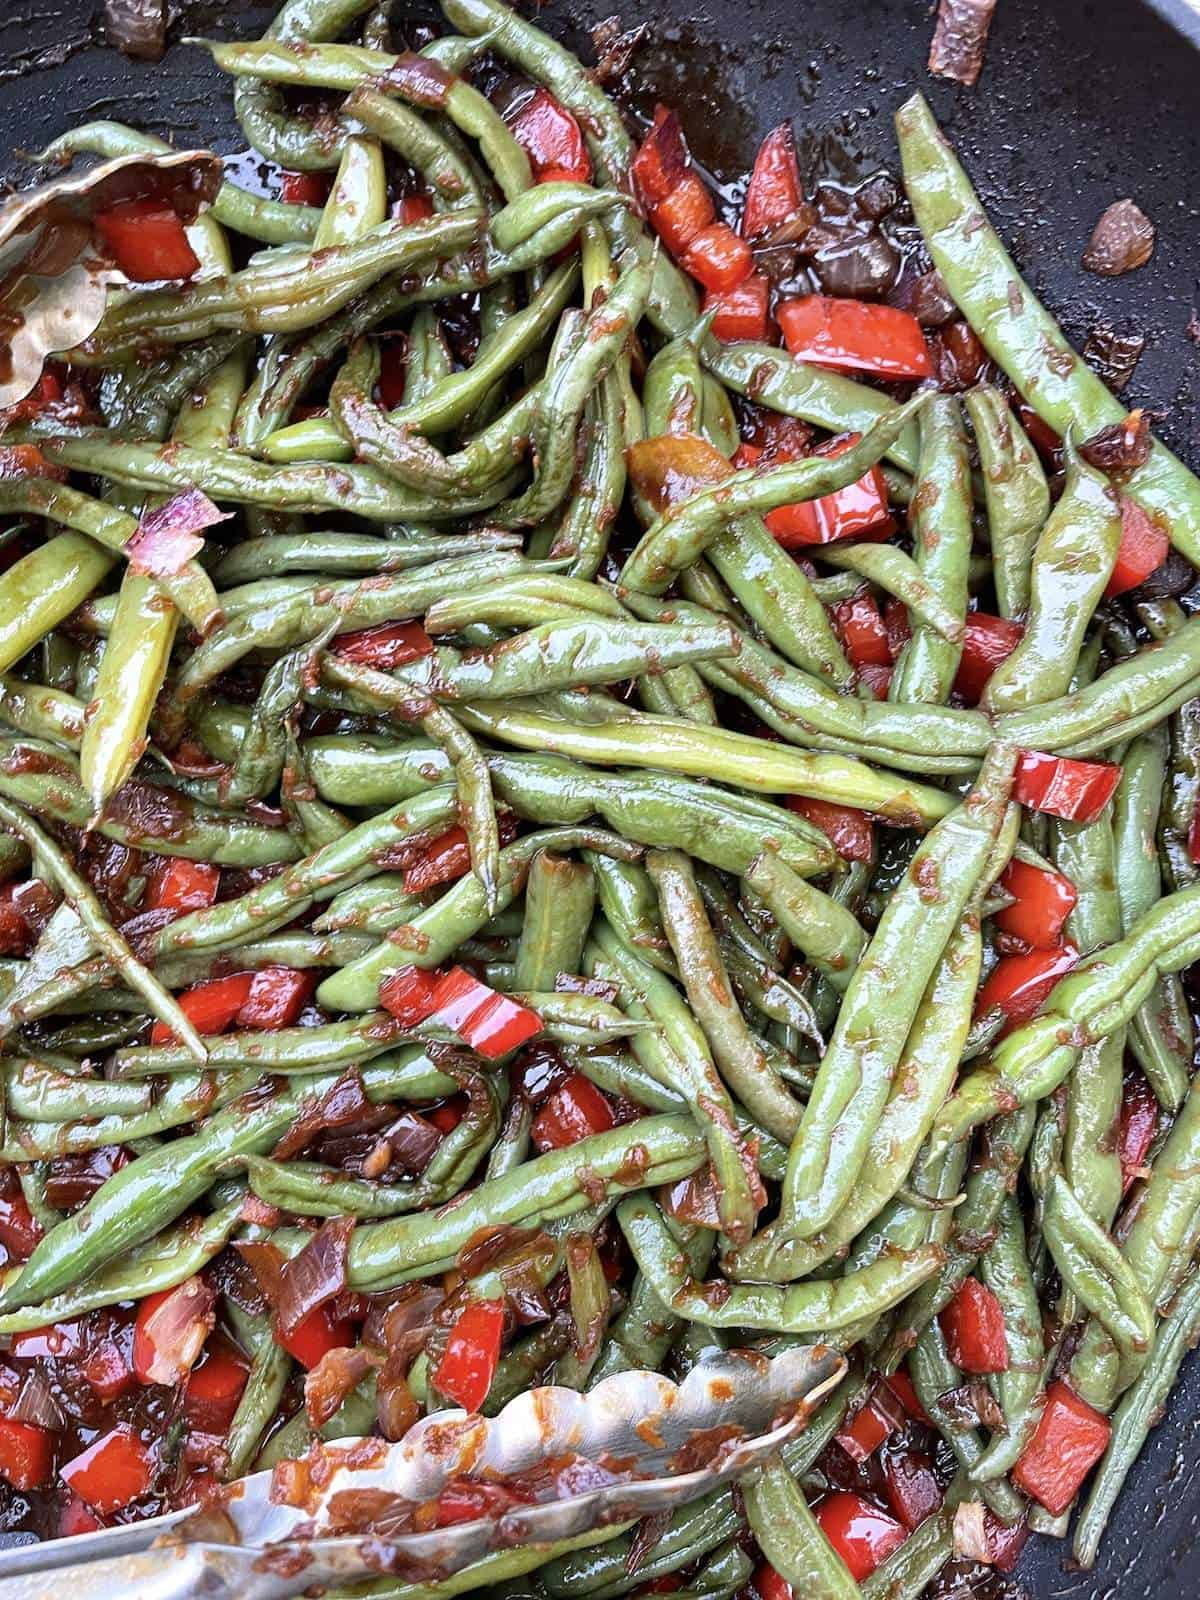 A frying pan filled with sautéed Peruvian green beans and a pair of tongs.